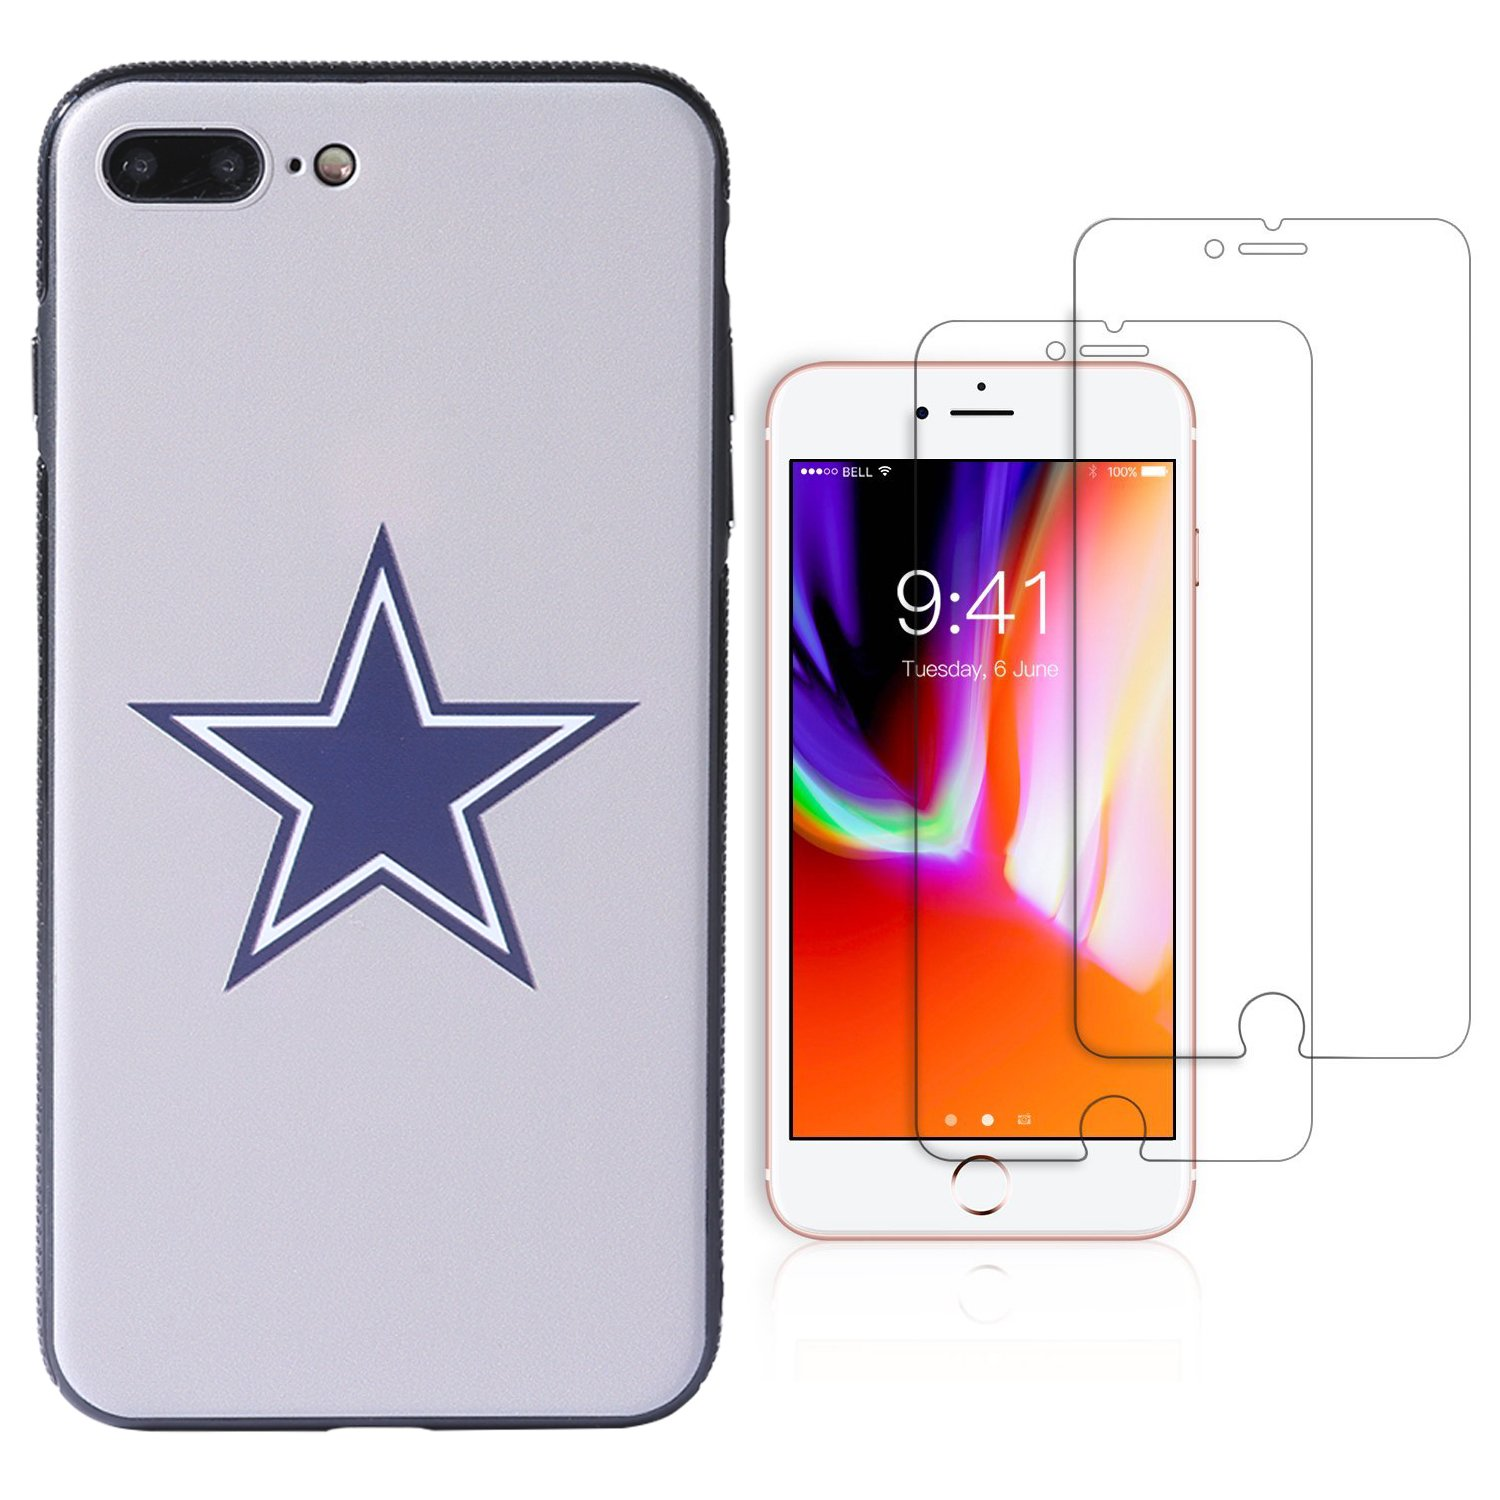 "Sportula NFL Phone Case for iPhone 7 Plus/iPhone 8 Plus (5.5""), Give 2 Premium Screen Protectors Extra Value Set (Dallas Cowboys)"